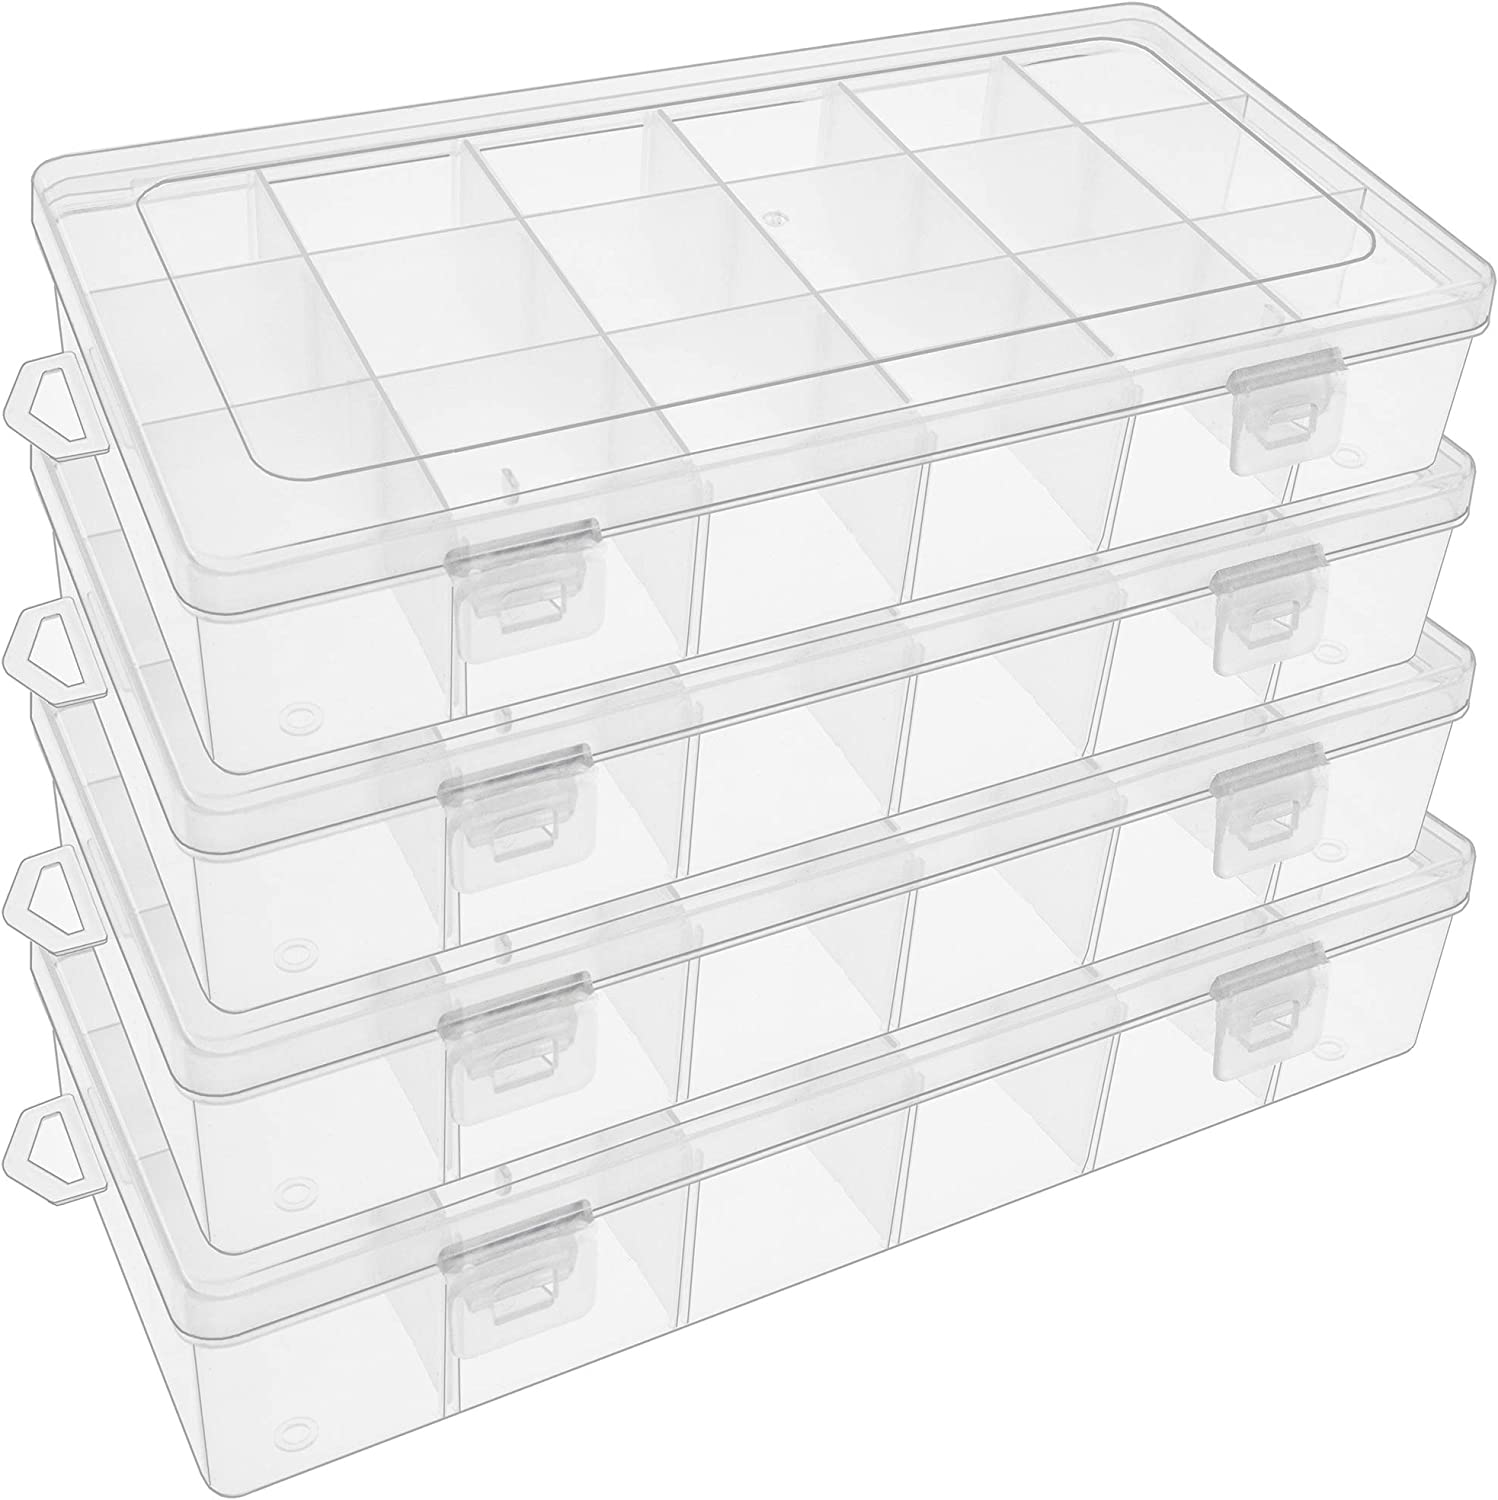 SGHUO 4 Pack 18 Grids Plastic Organizer Box Jewelry Container with Adjustable Dividers for Rock /& Mineral Collection Jewelry Beads Storage